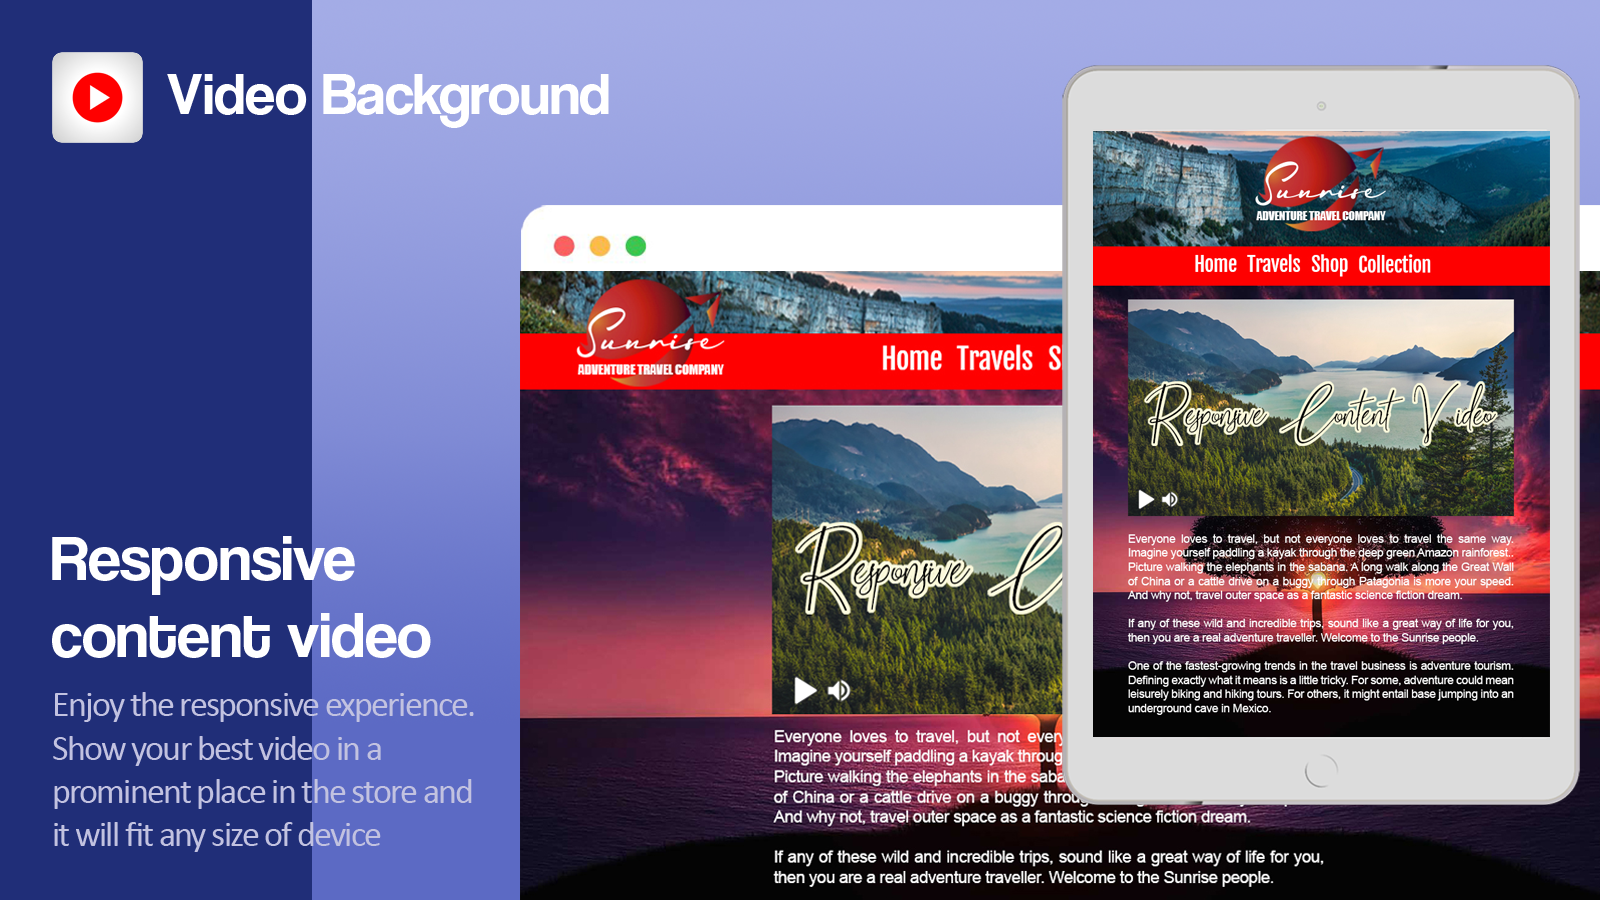 Show your best video in a prominent place in the store